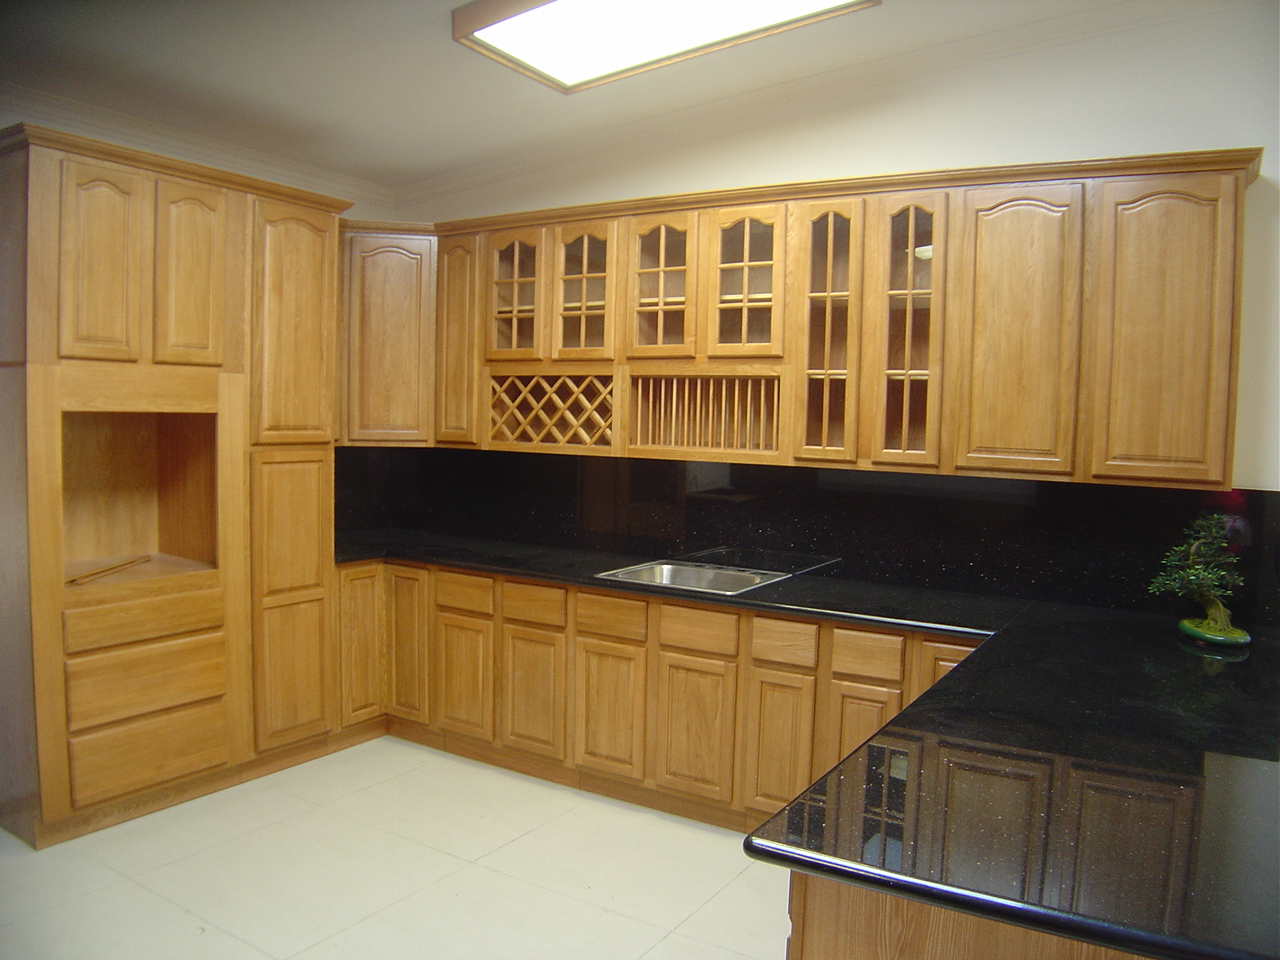 Oak kitchen cabinets for your interior kitchen minimalist for Kitchen design ideas with oak cabinets